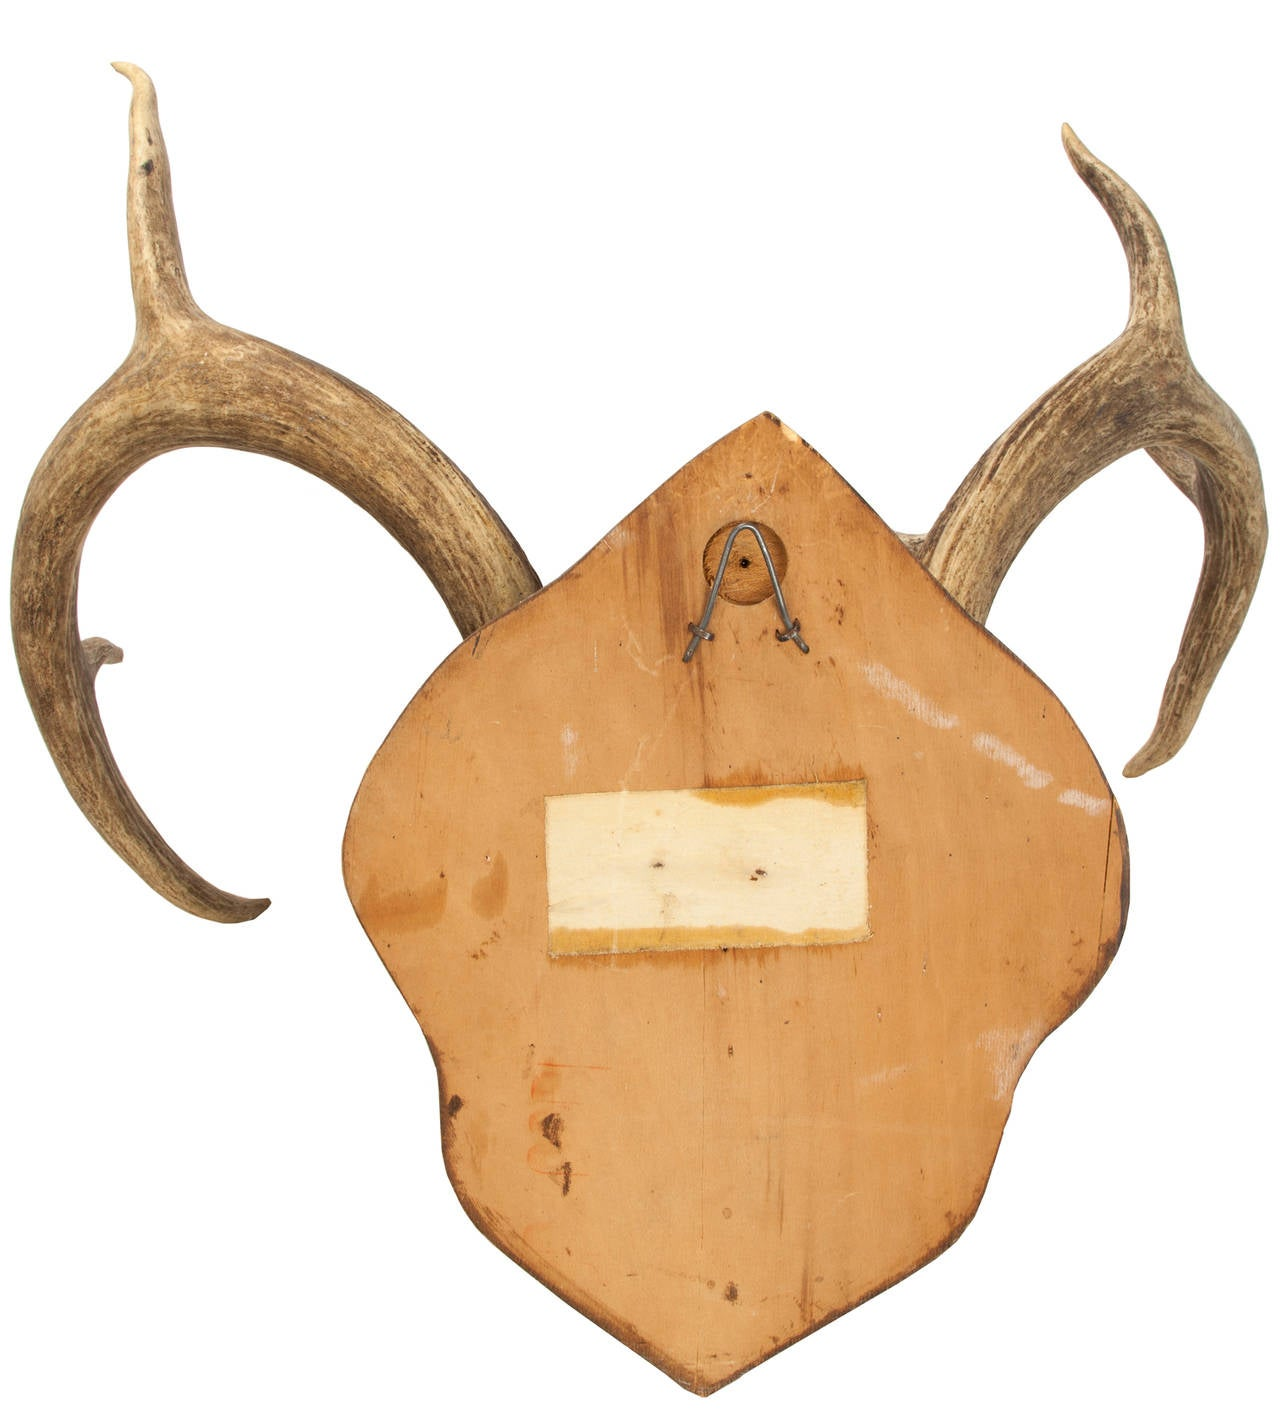 Antique Mounted Mule Deer Antler Trophy For Sale At 1stdibs